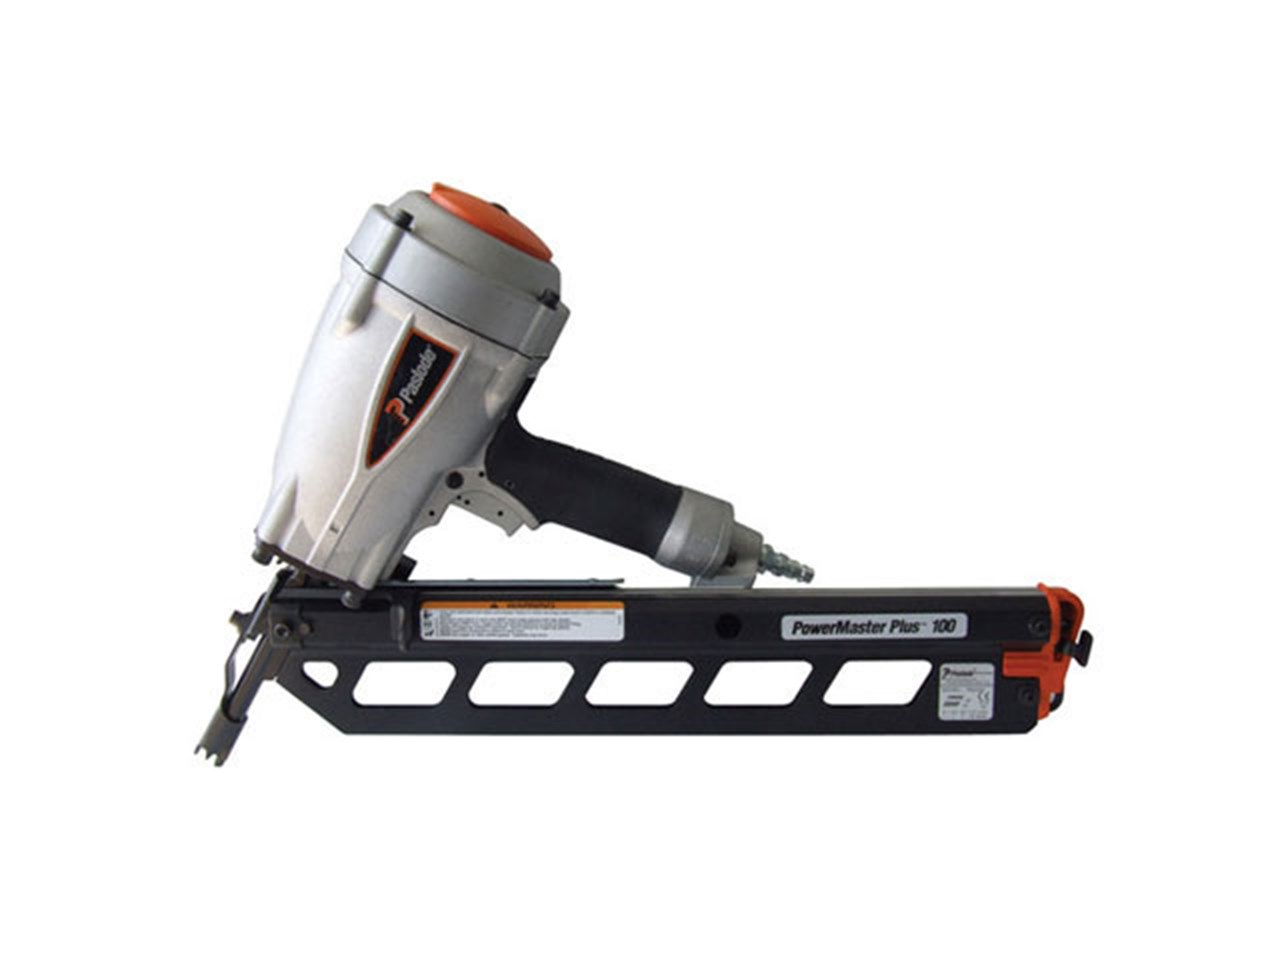 paslode psn1001 pneumatic framing nailer